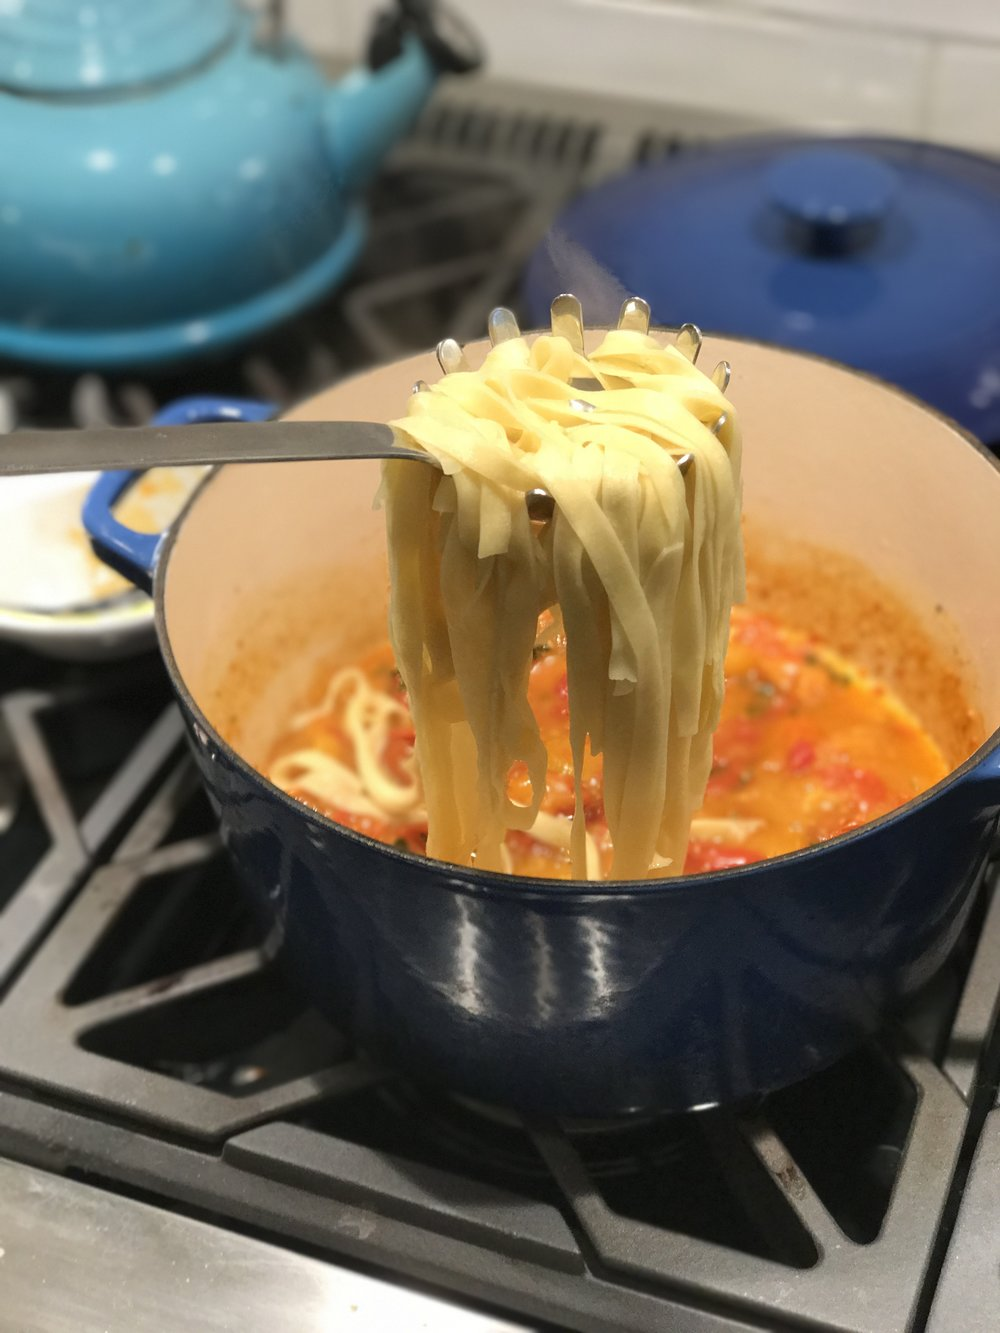 In authentic Italian fashion, I add the cooked pasta directly to the pot of sauce. The pasta water contains starch that will help the sauce stick to the pasta.